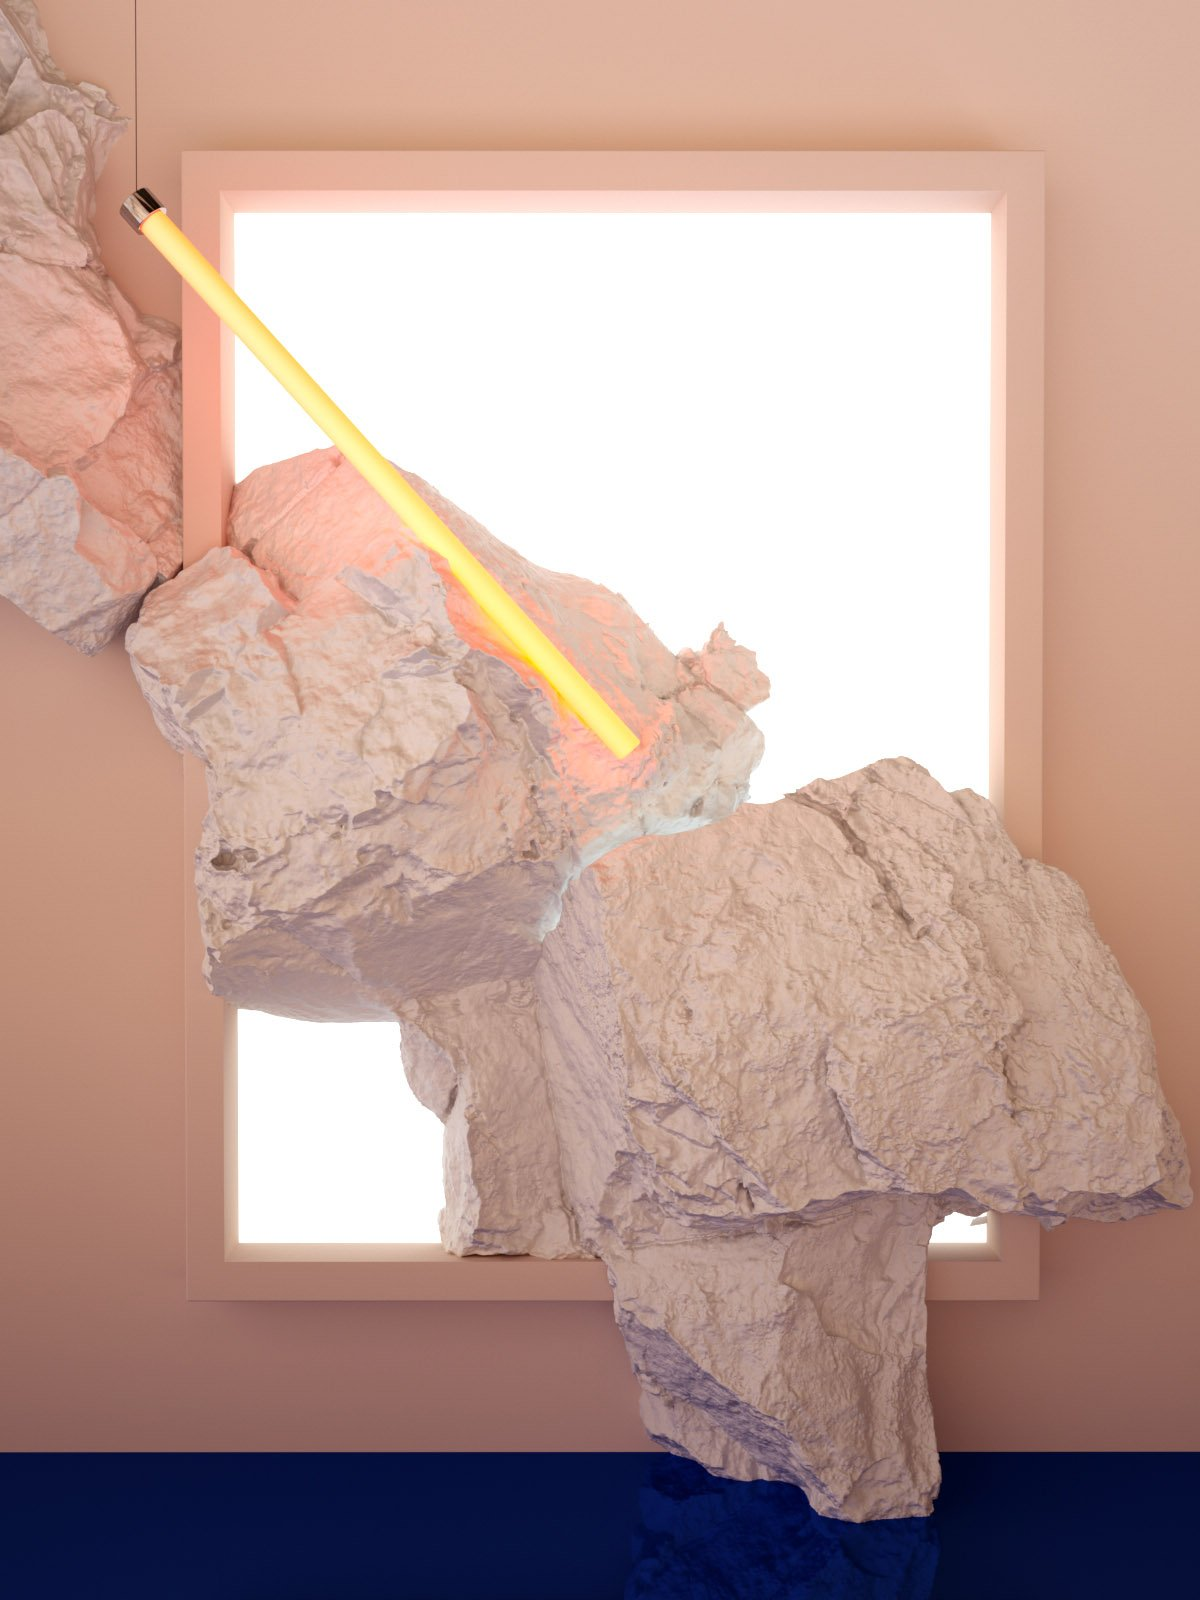 iGNANT_Art_Anders_Brasch_Willumsen_Rocks_And_Light_7